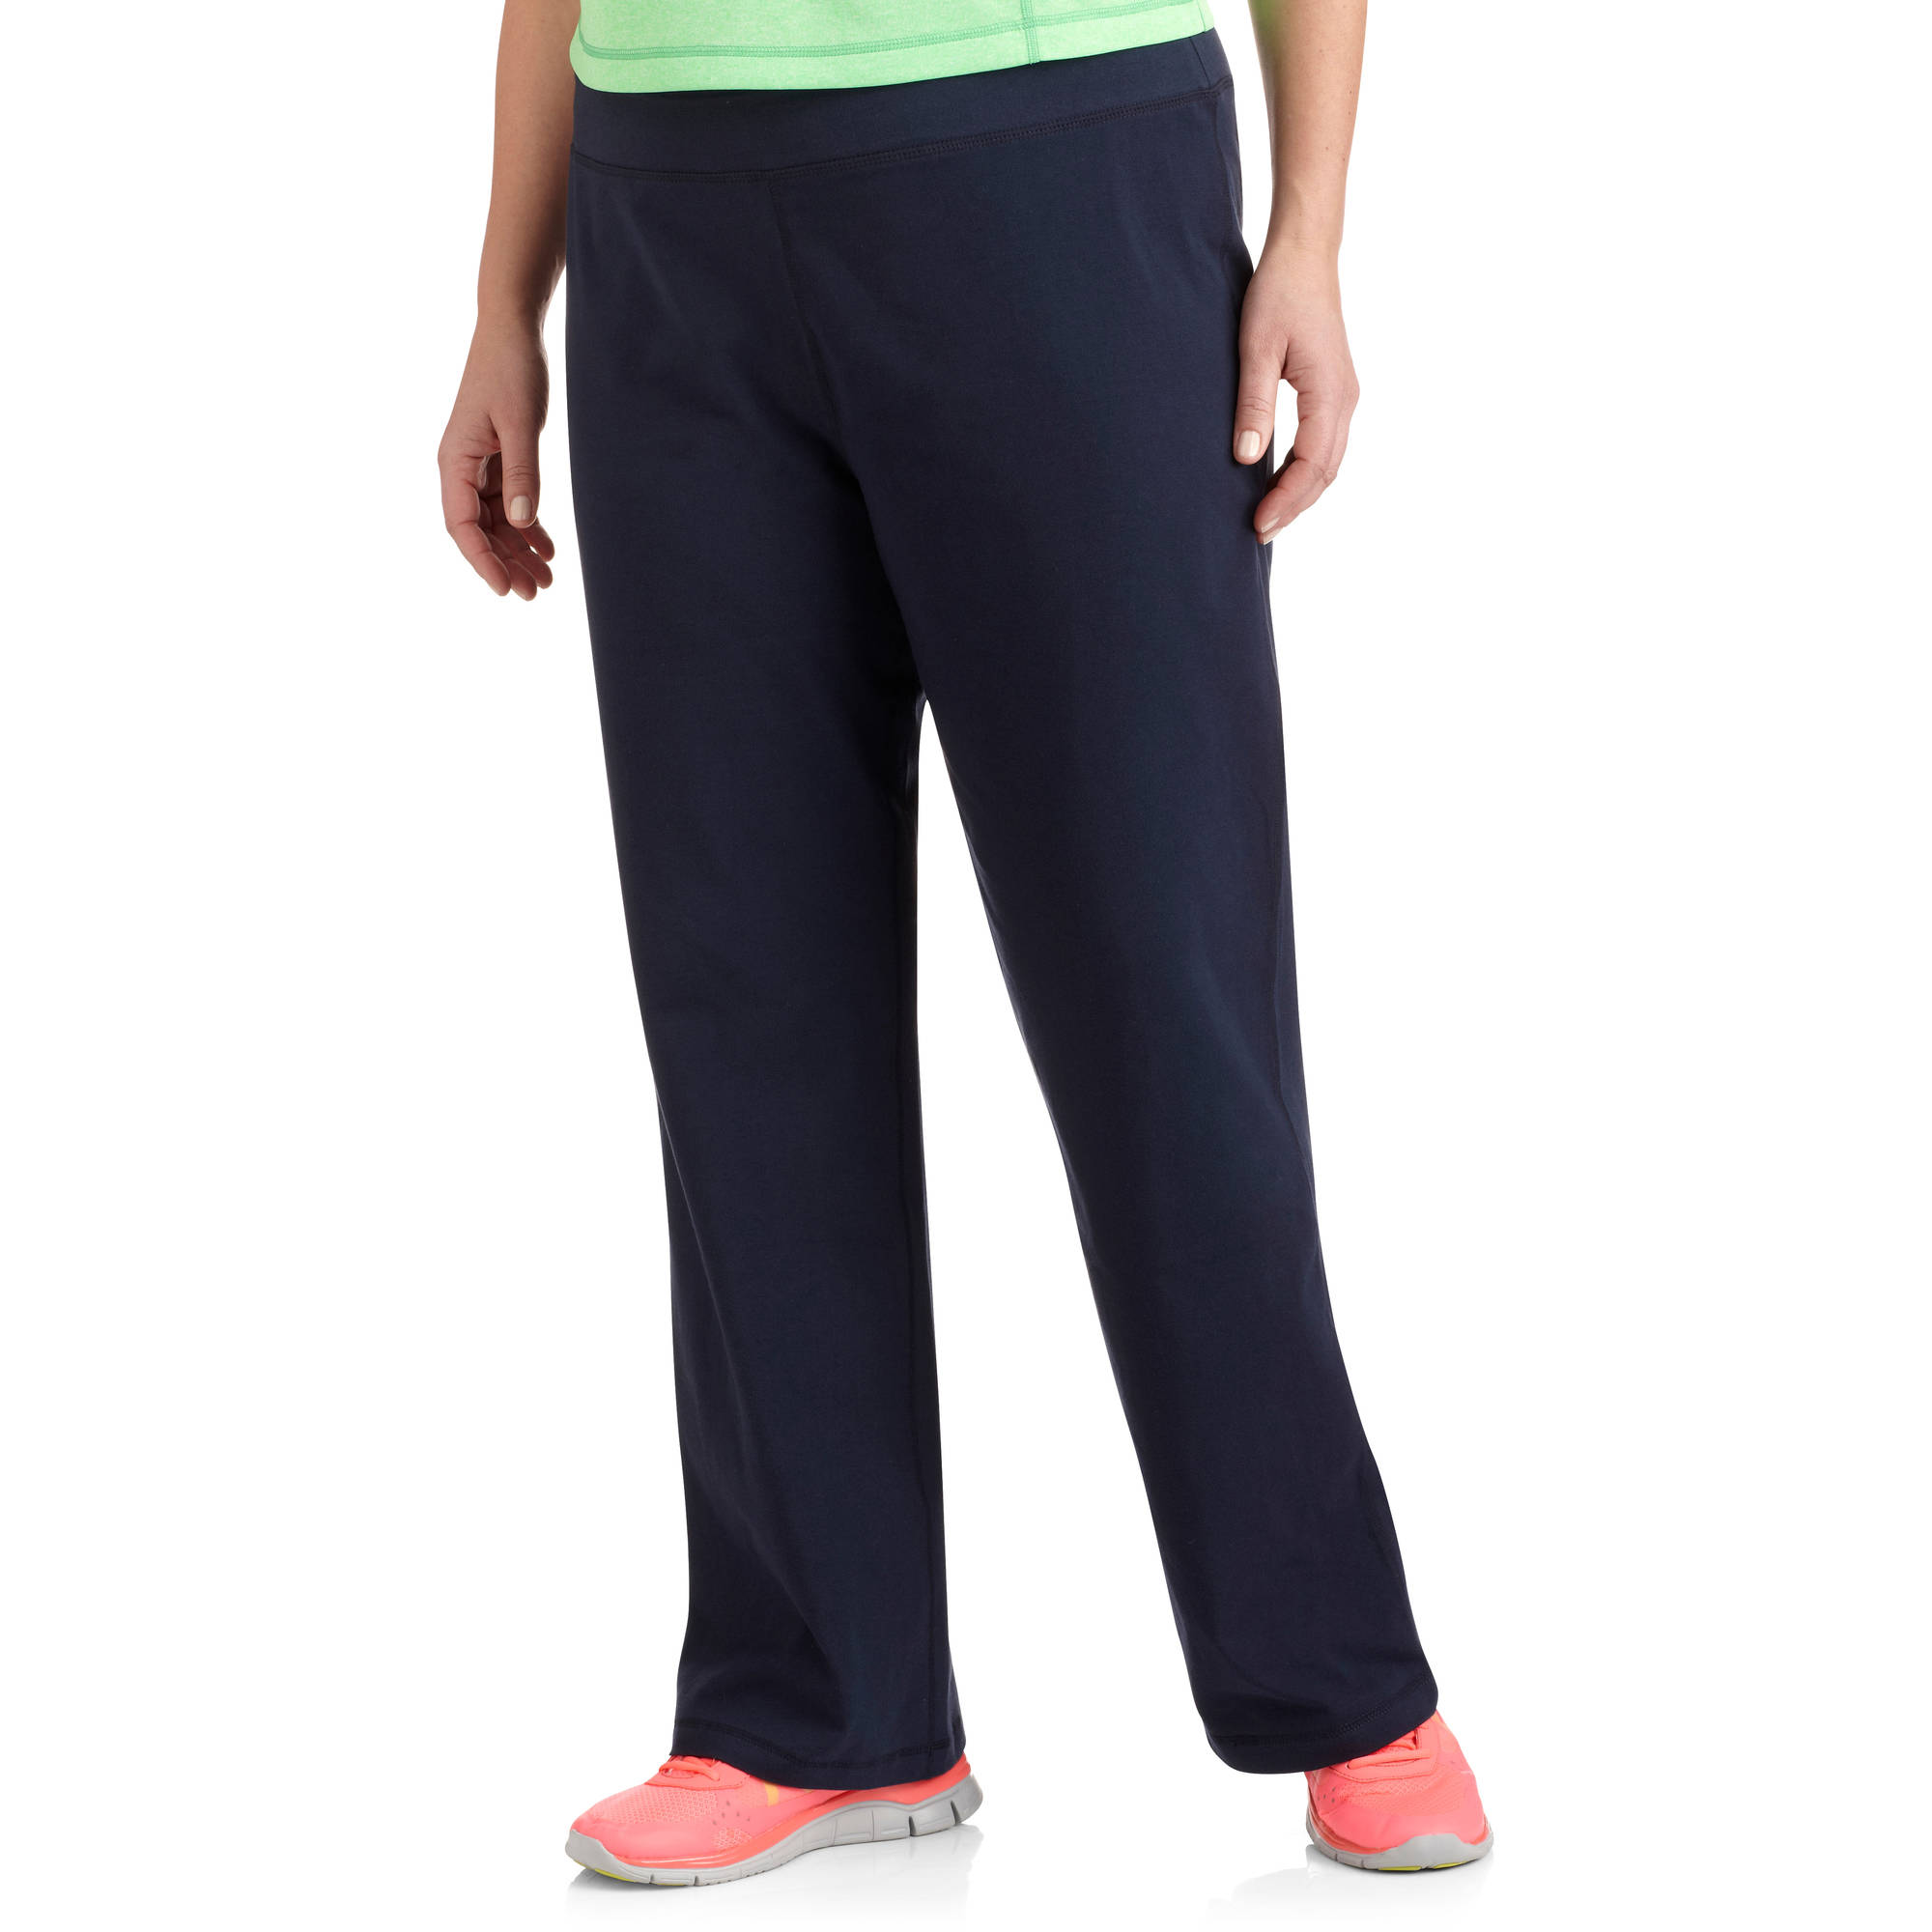 plus size pants danskin now womenu0027s plus size dri more core bootcut workout pants -  walmart.com coblaok